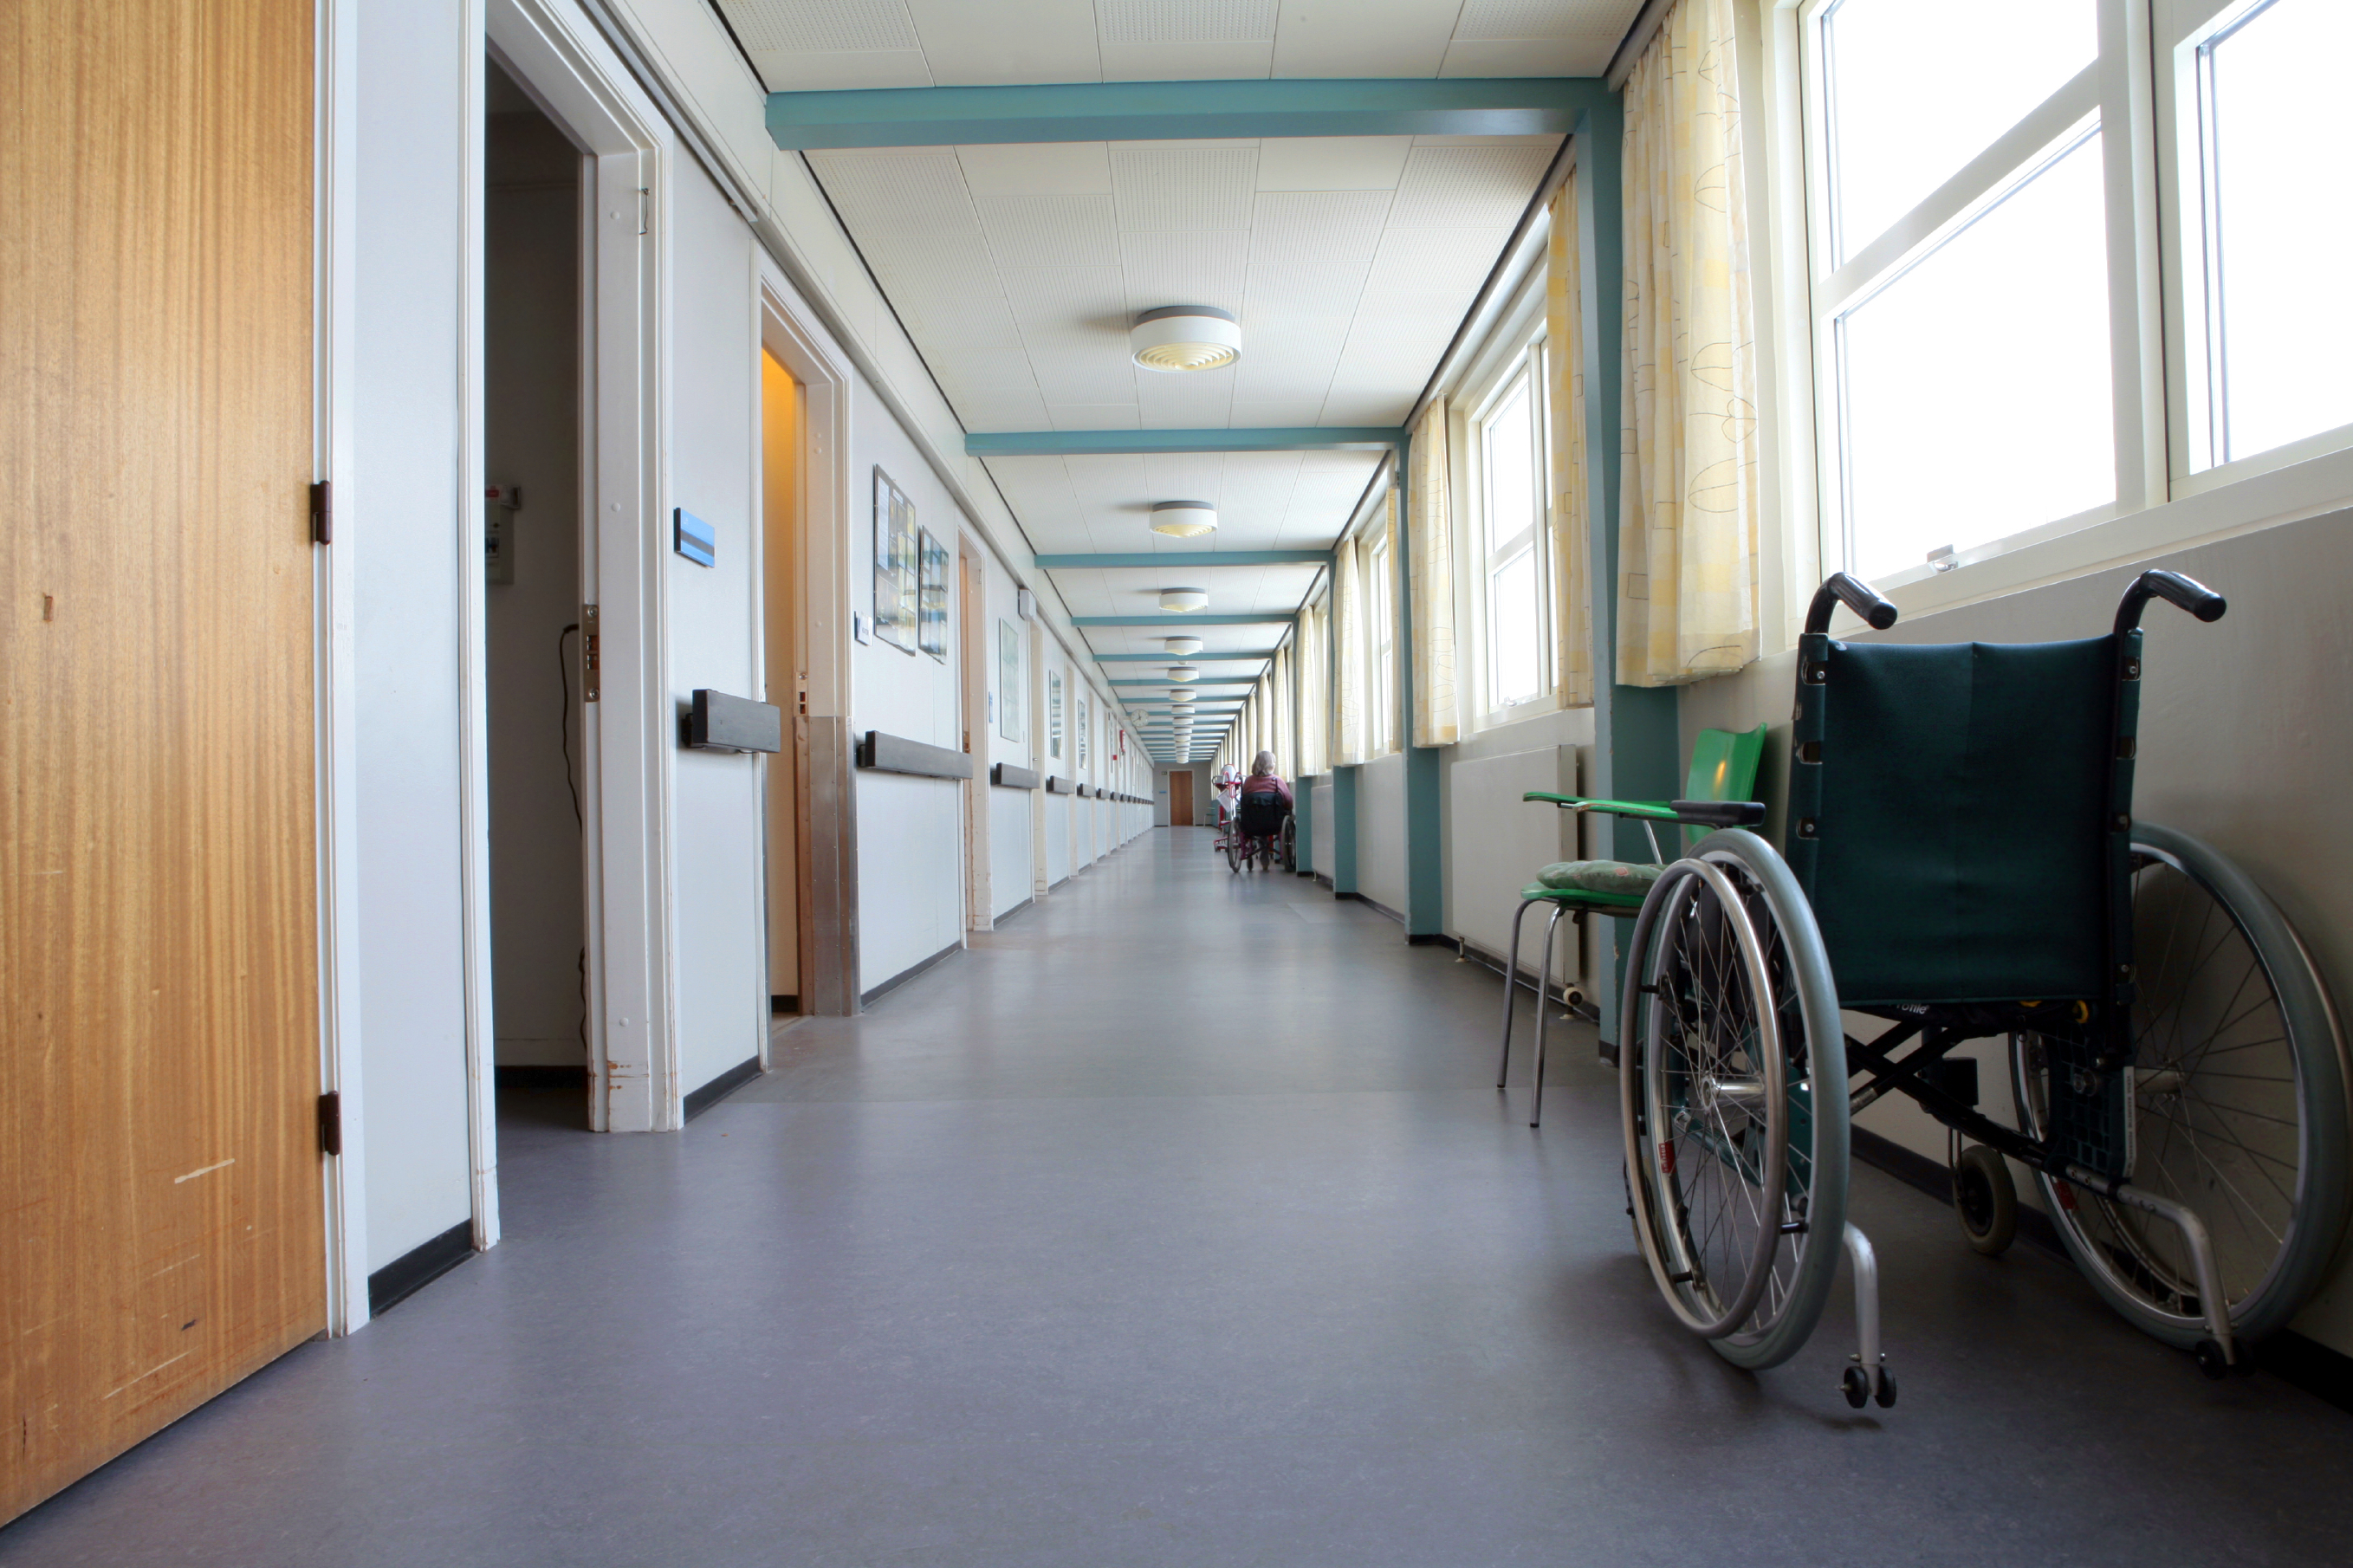 Article image for Sedatives, hypnotics used as 'surrogate' in nursing homes, AMA warns